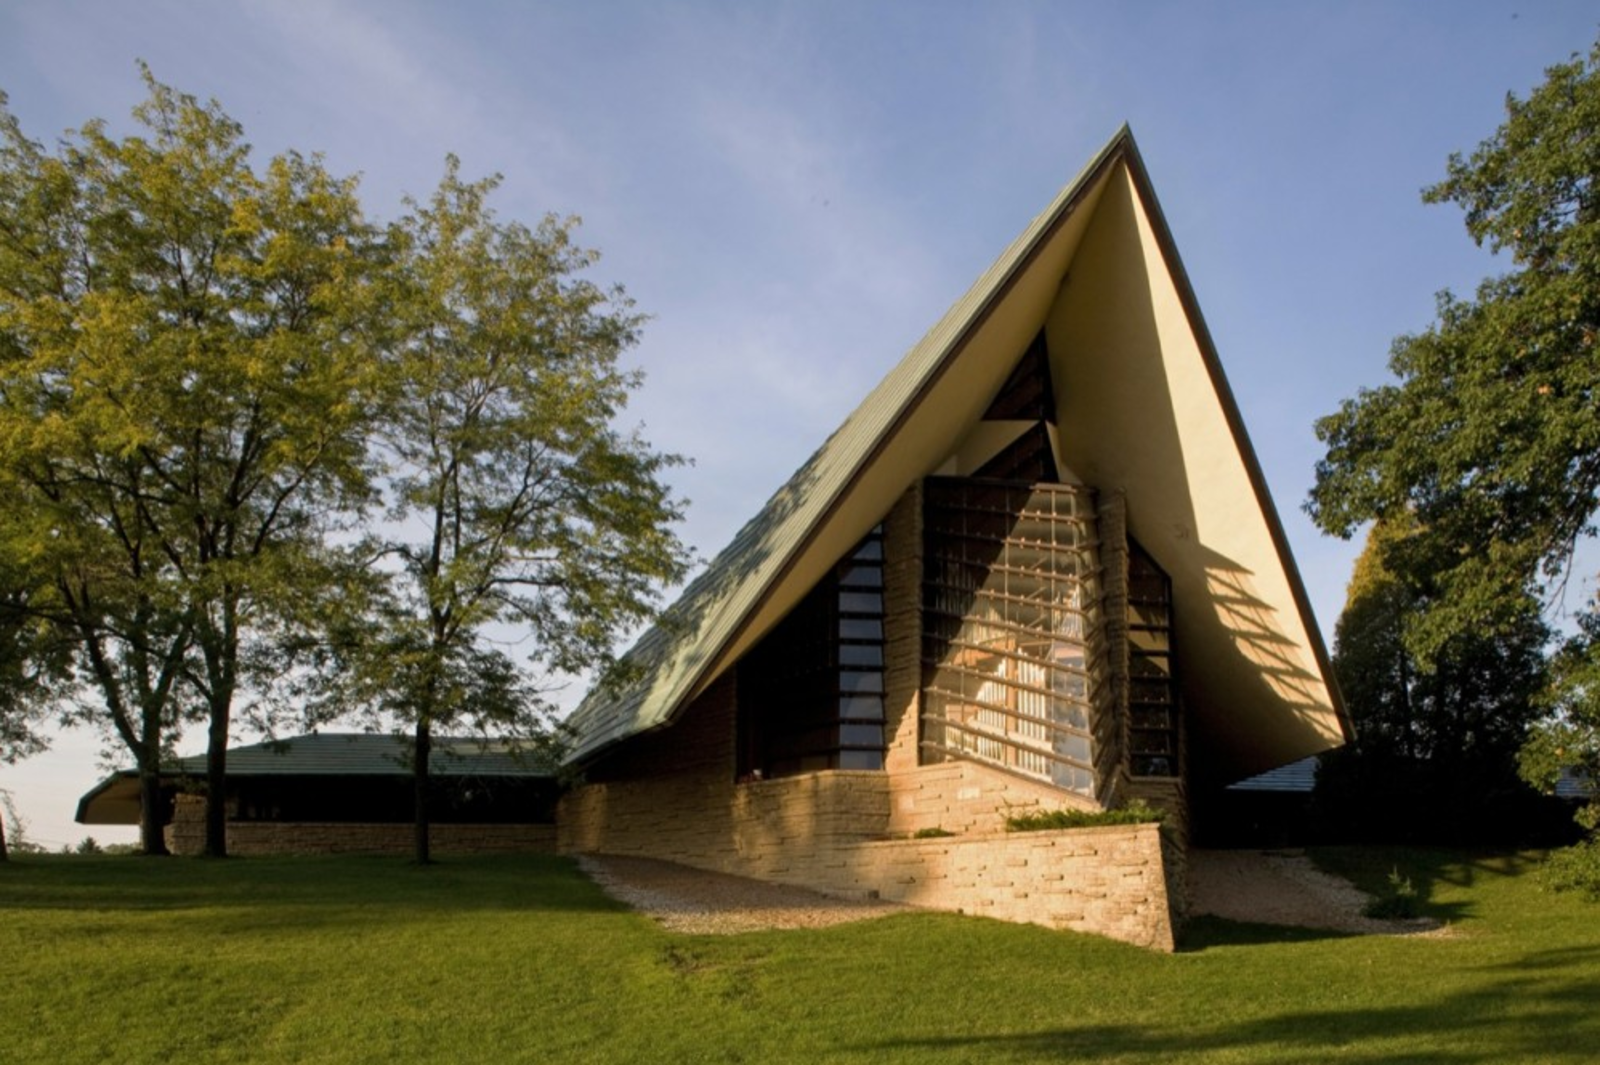 Exterior, A-Frame, Mid-Century, and Prefab The seeds for Frank Lloyd Wright's collaboration with prefab builder Marshall Erdman were planted when Erdman hired the architect to design the First Unitarian Society meeting house in Madison, Wisconsin. [Photo credit courtesy The Kubala Washatko Architects (TKWA) via ArchDaily]  Exterior A-Frame Mid-Century Photos from A Look at Frank Lloyd Wright's Little-Known Prefabs